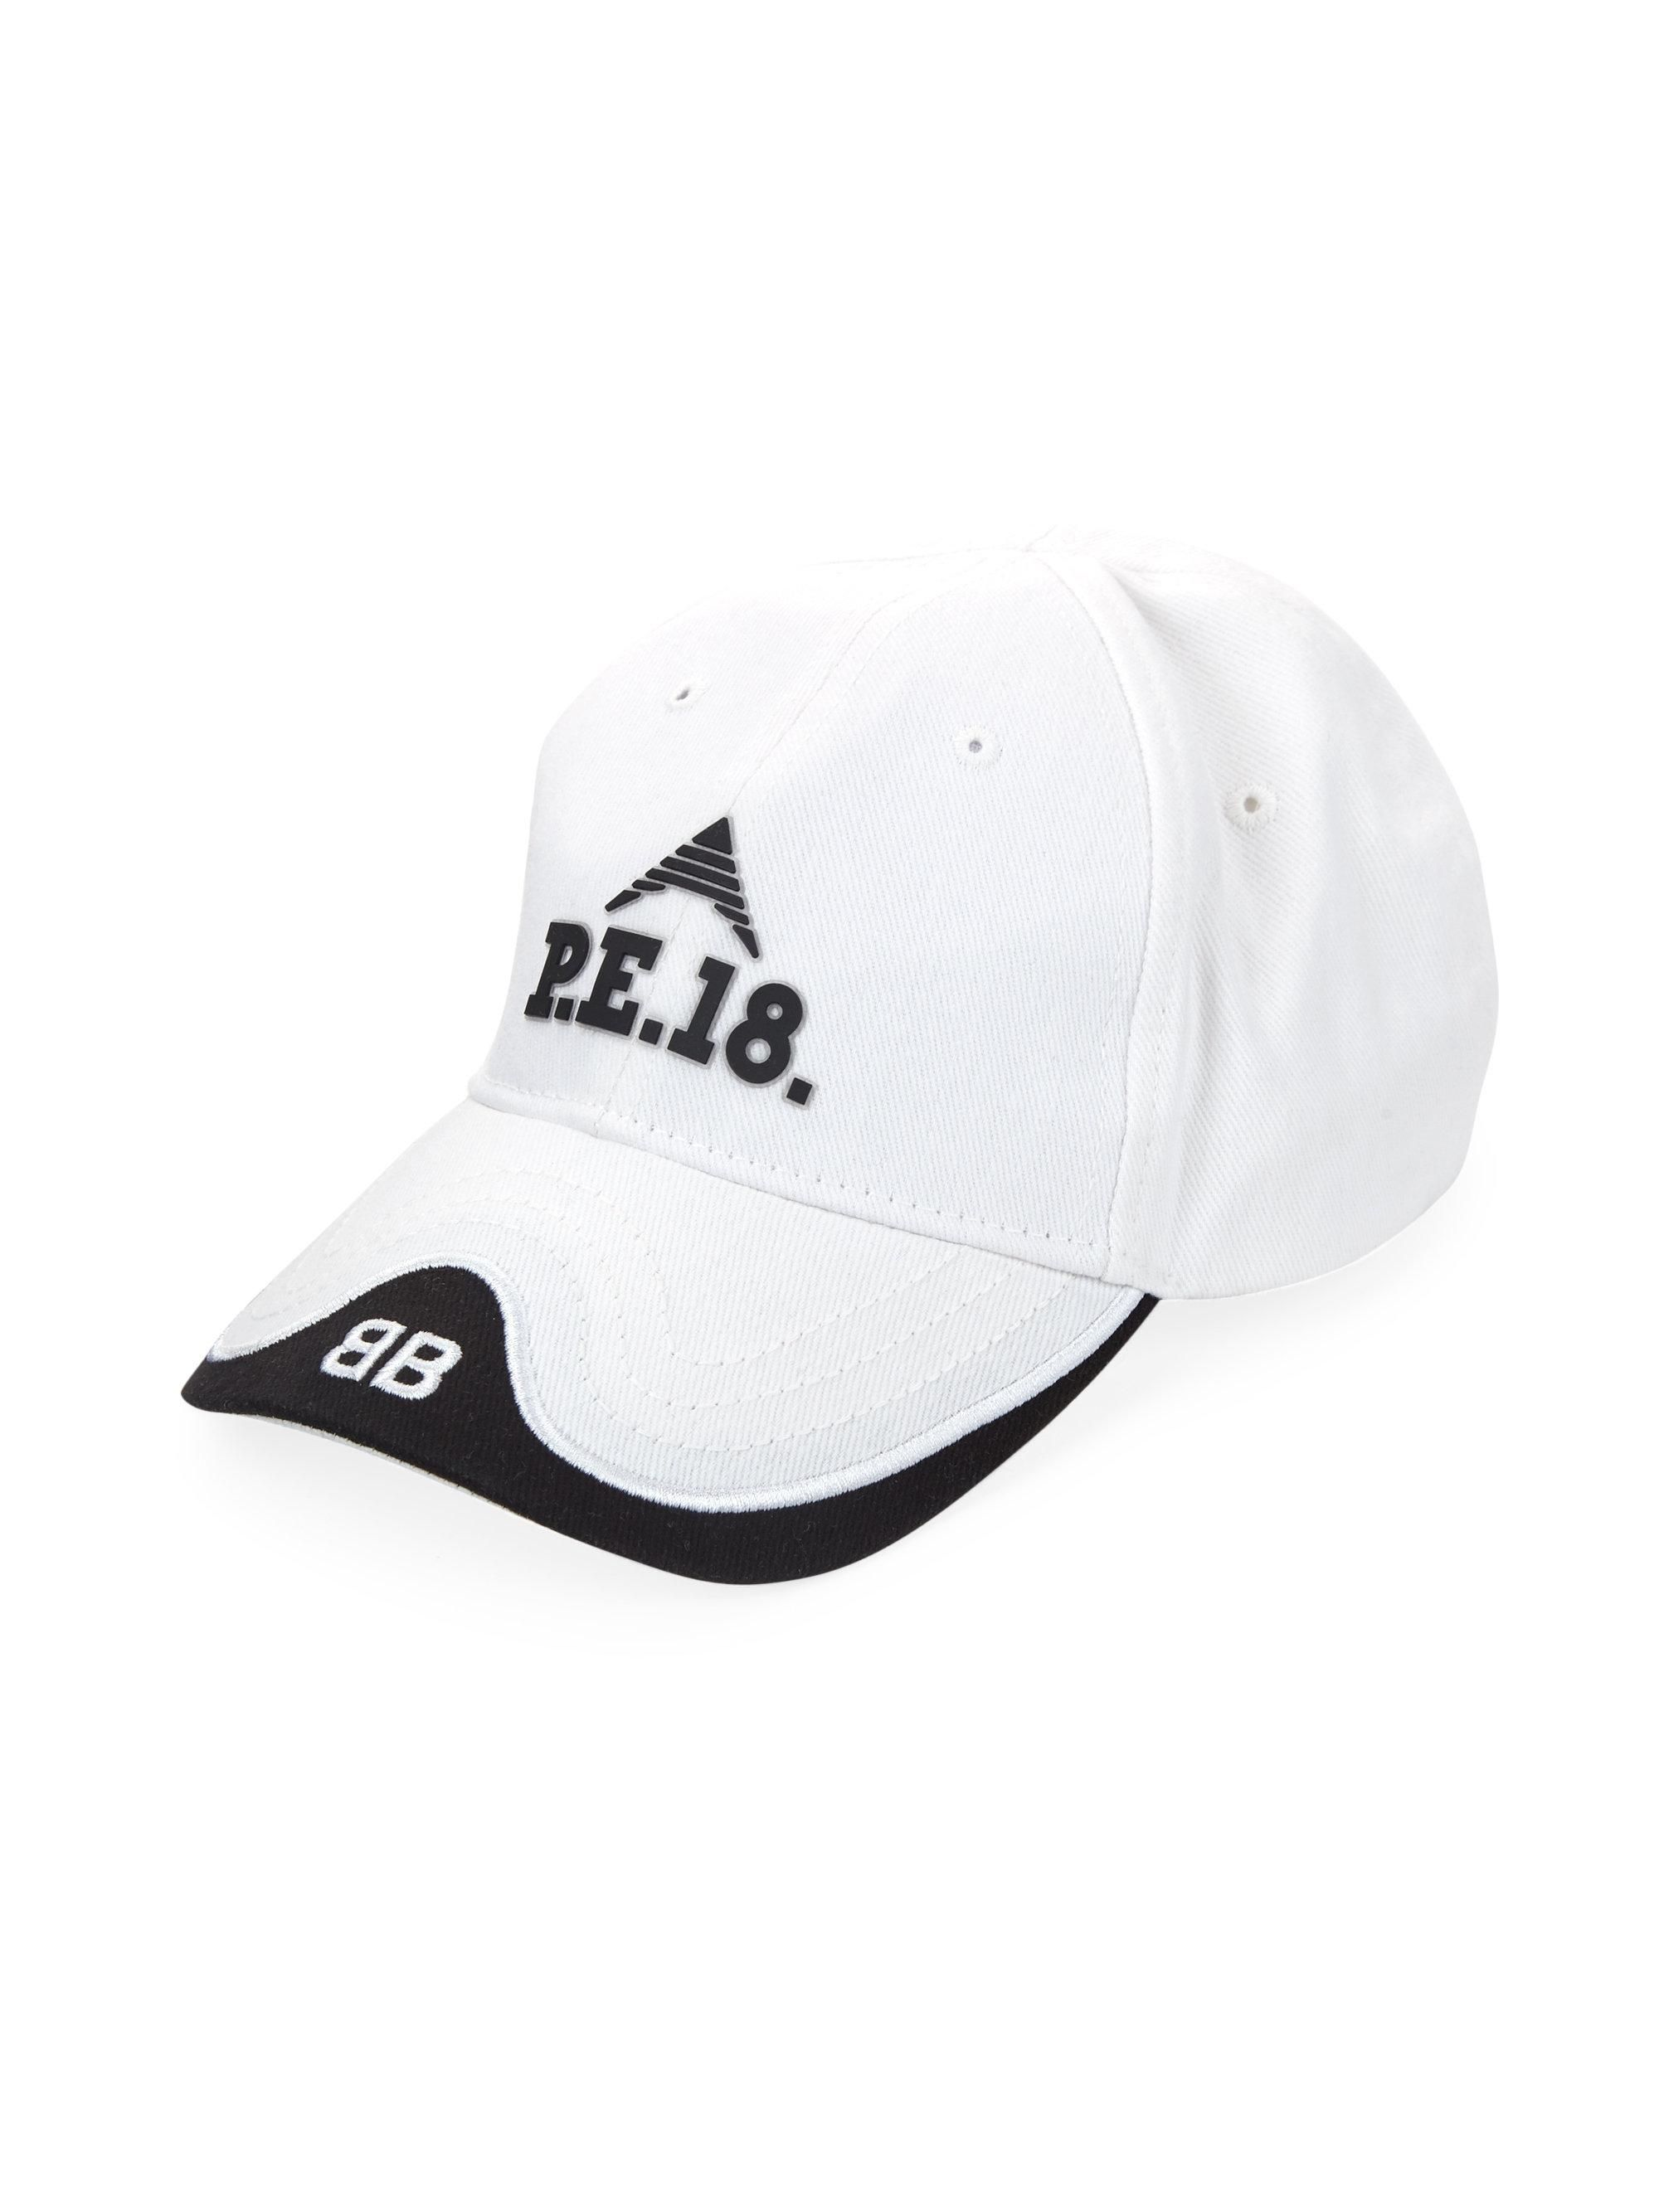 e684f7c79cf19 Women s P.e. 18 Baseball Cap - White Black